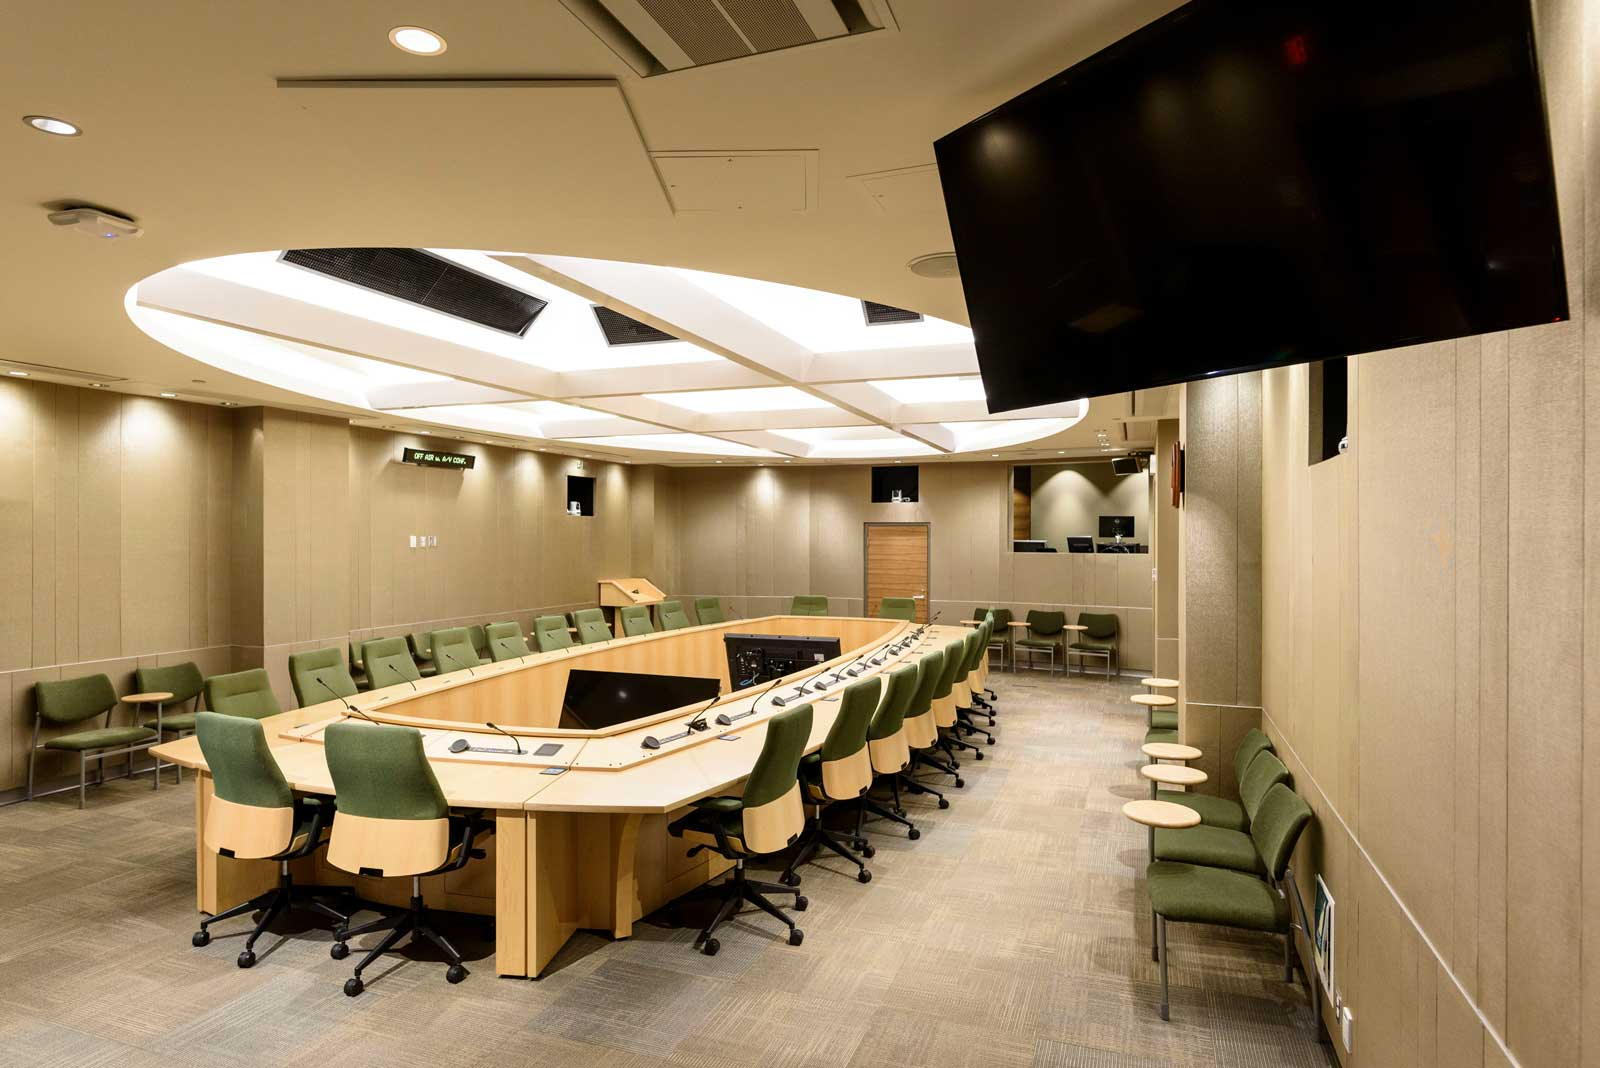 Photo of the Foothills Committee Room in the EFB